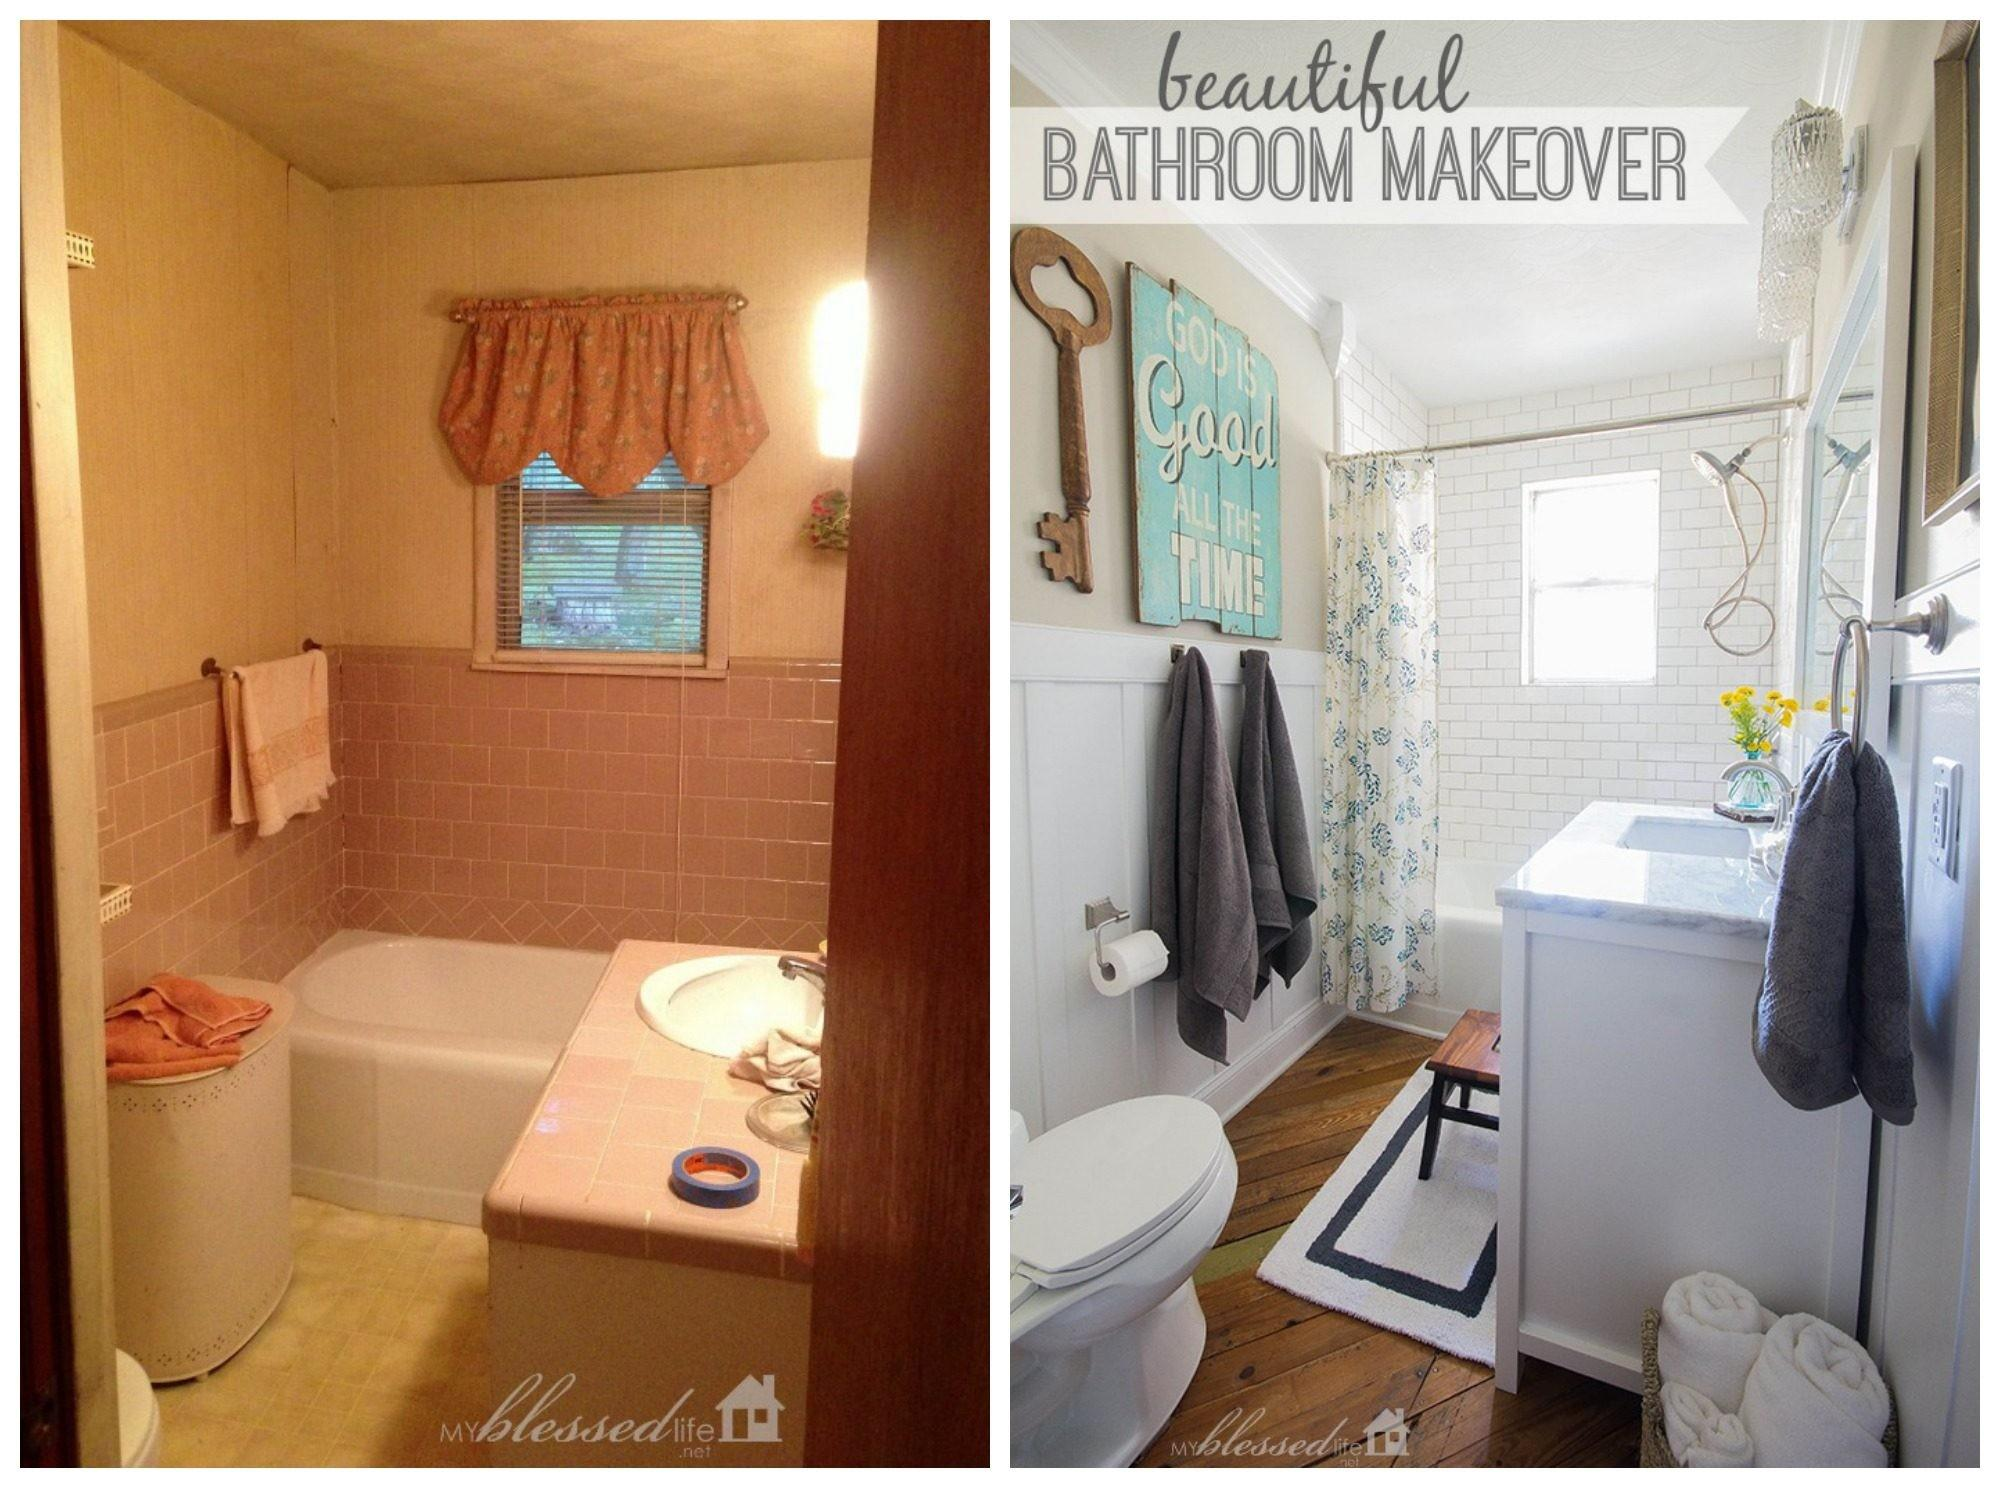 Bathroom Renovation Before After Trends